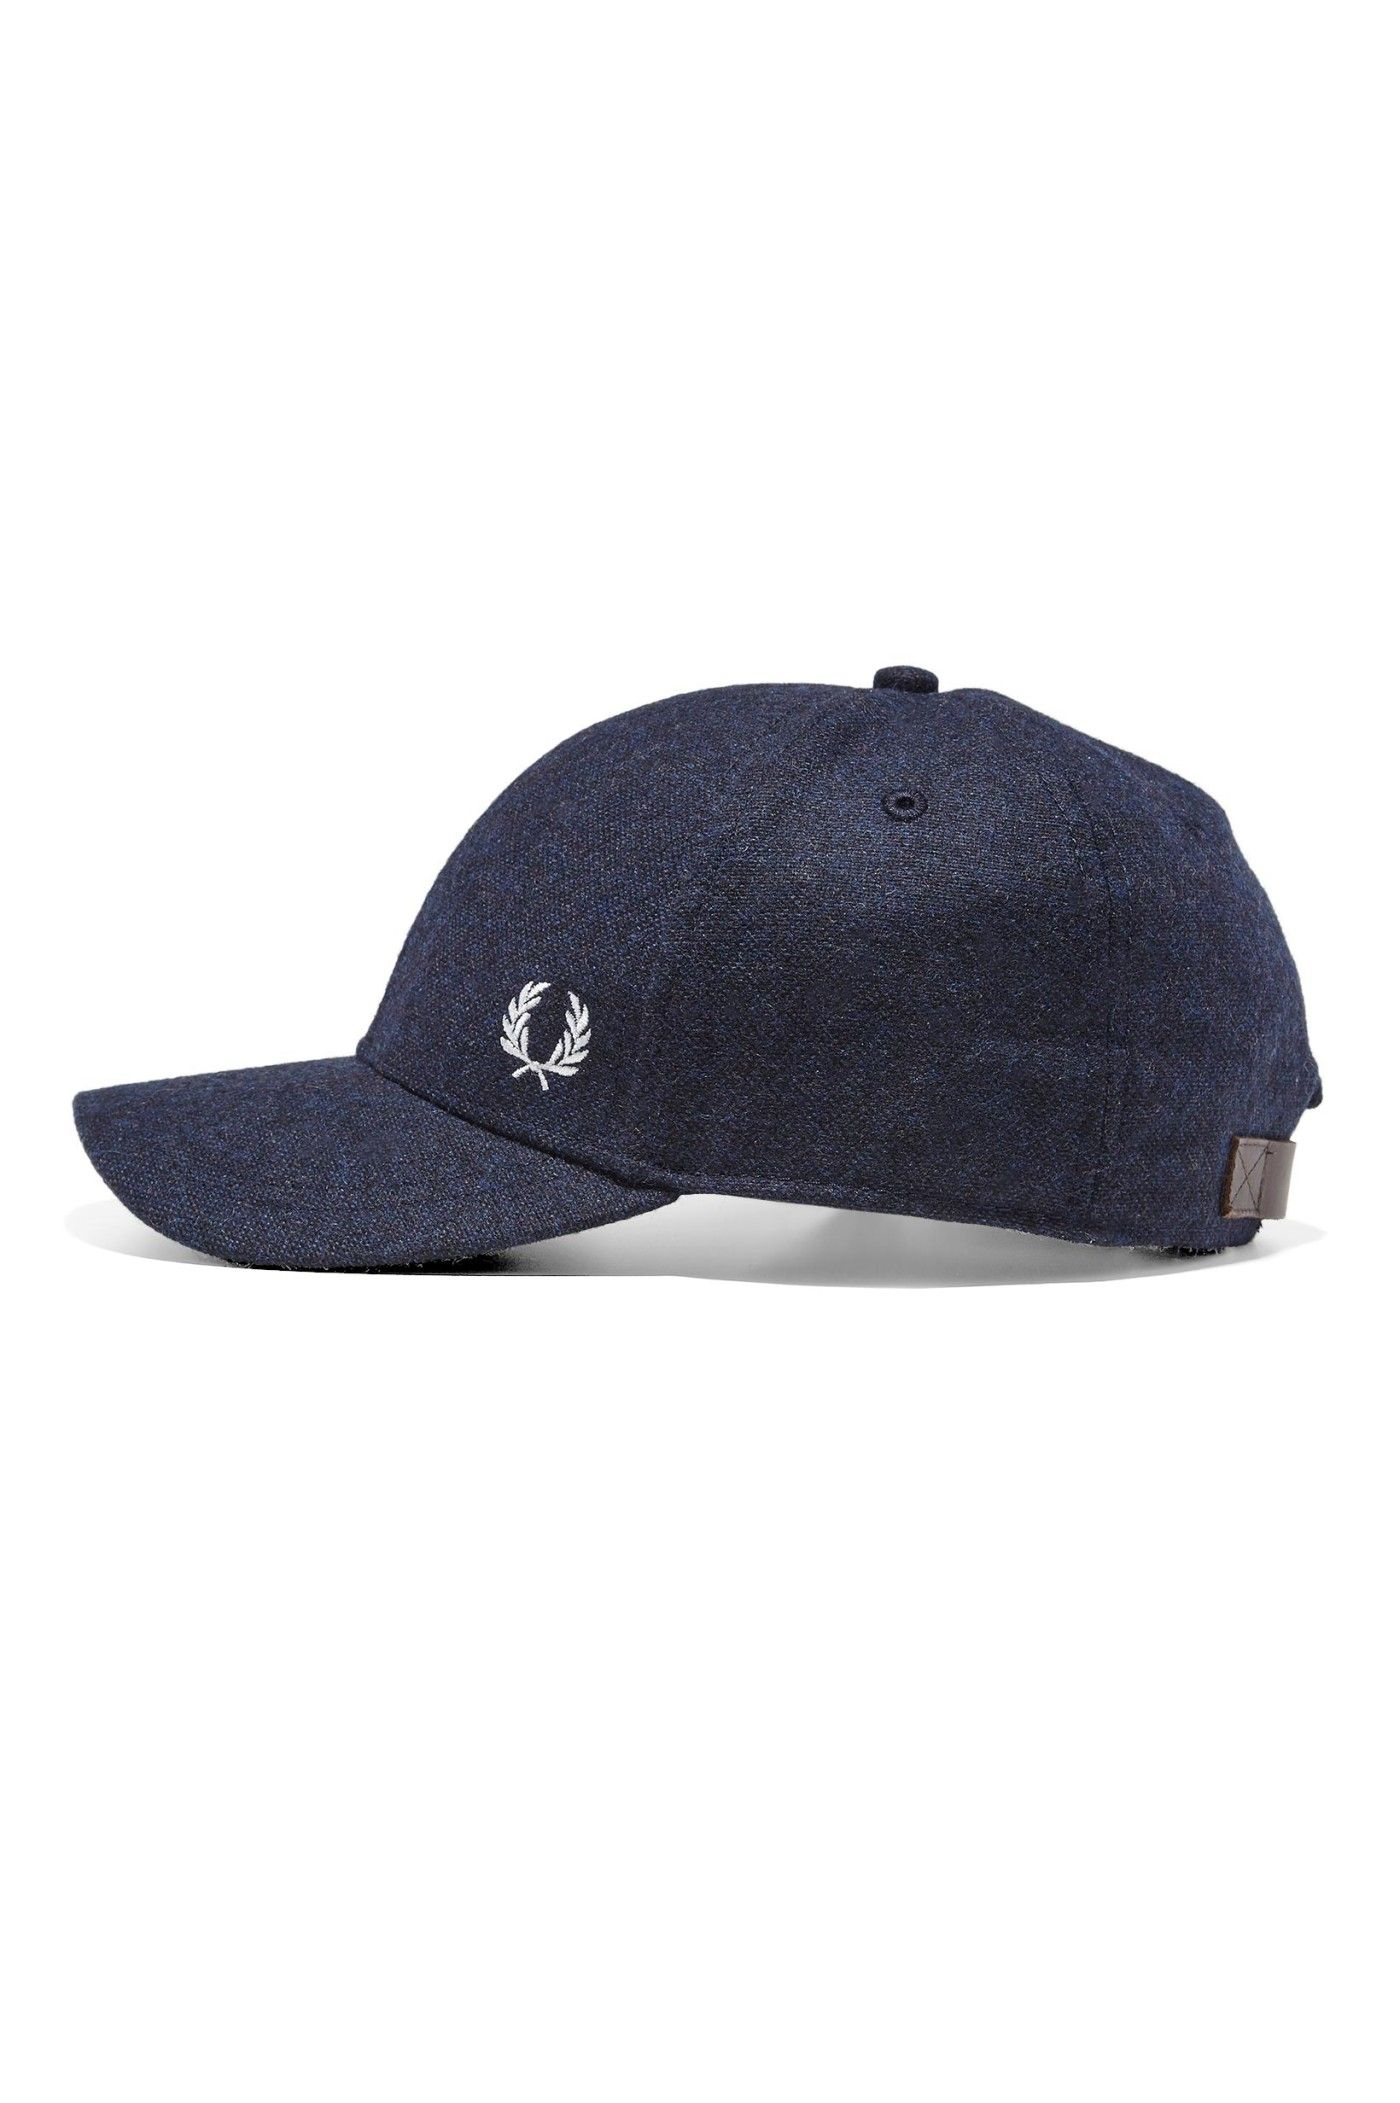 buy popular ad5af f7559 Fred Perry - Boiled Wool Baseball Cap Navy